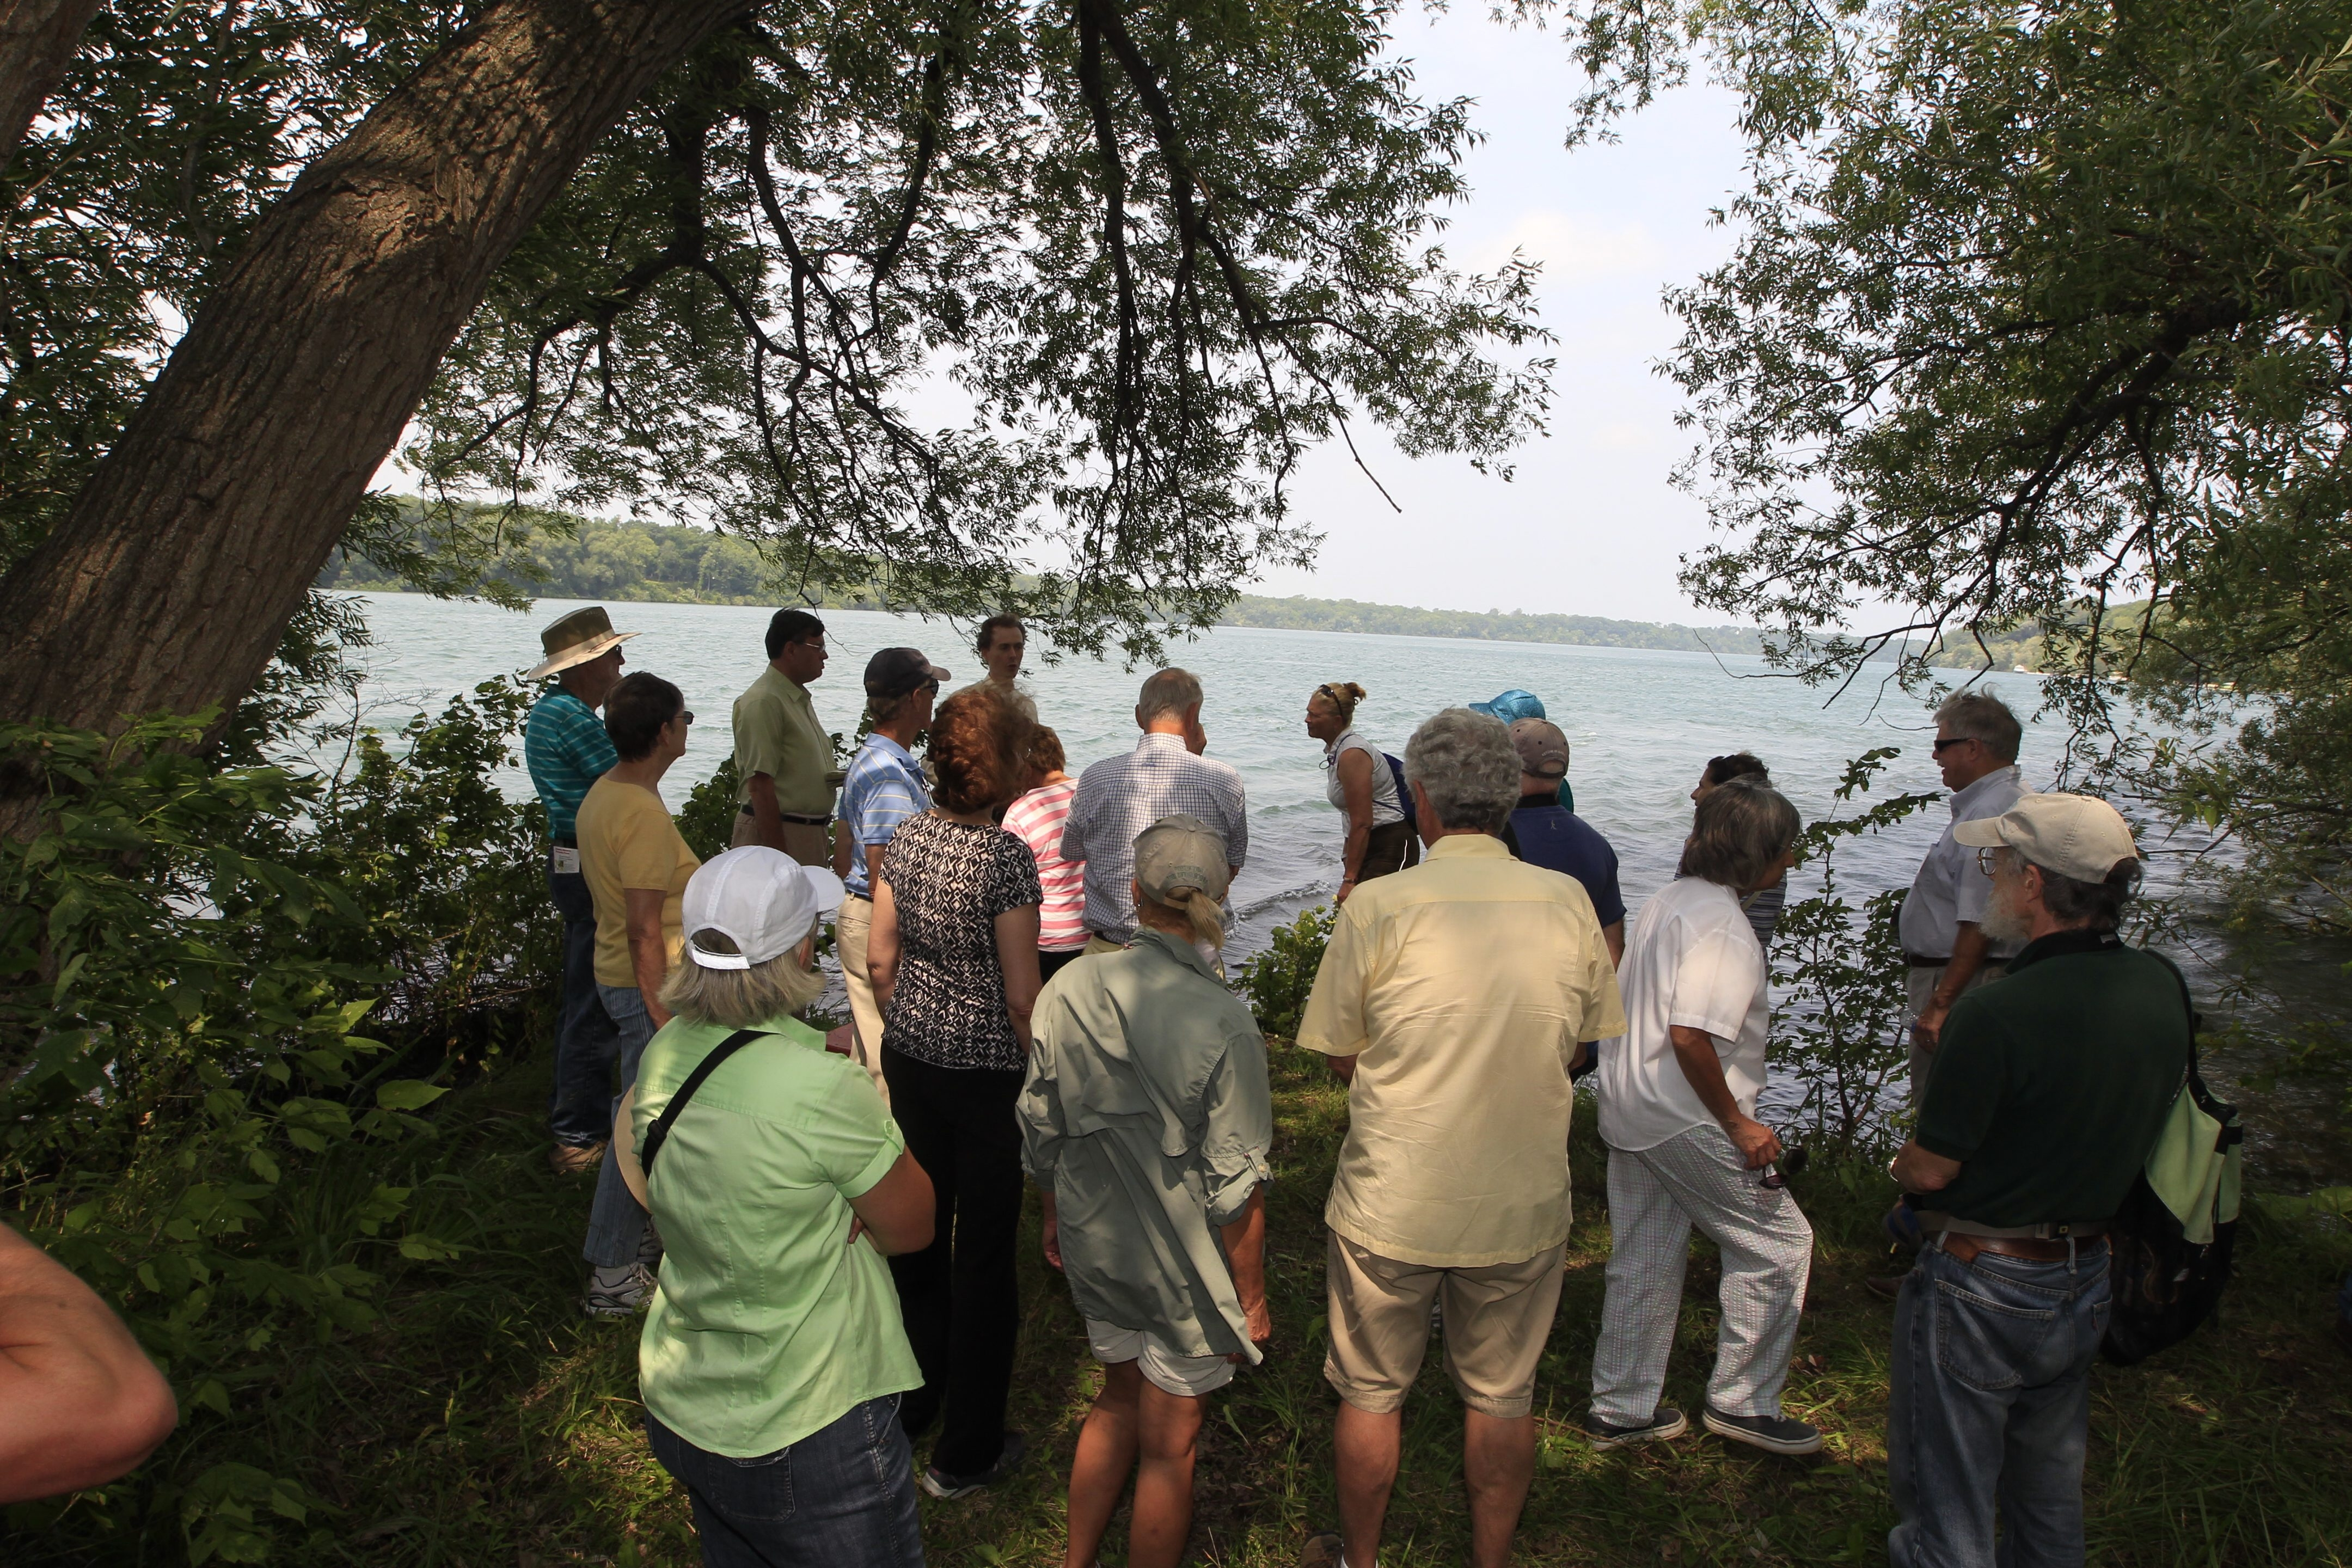 Visitors check out the kayak launch on the Niagara River at Stella Niagara Preserve as the Western New York Land Conservancy opens the Lewiston site to the public after acquiring it in May from the Sisters of St. Francis, the order that had owned the land for 108 years. Below, Paula Sciuk, of Grand Island, left, and Nancy Cimbal, of Williamsville, chat while enjoying the hiking paths.